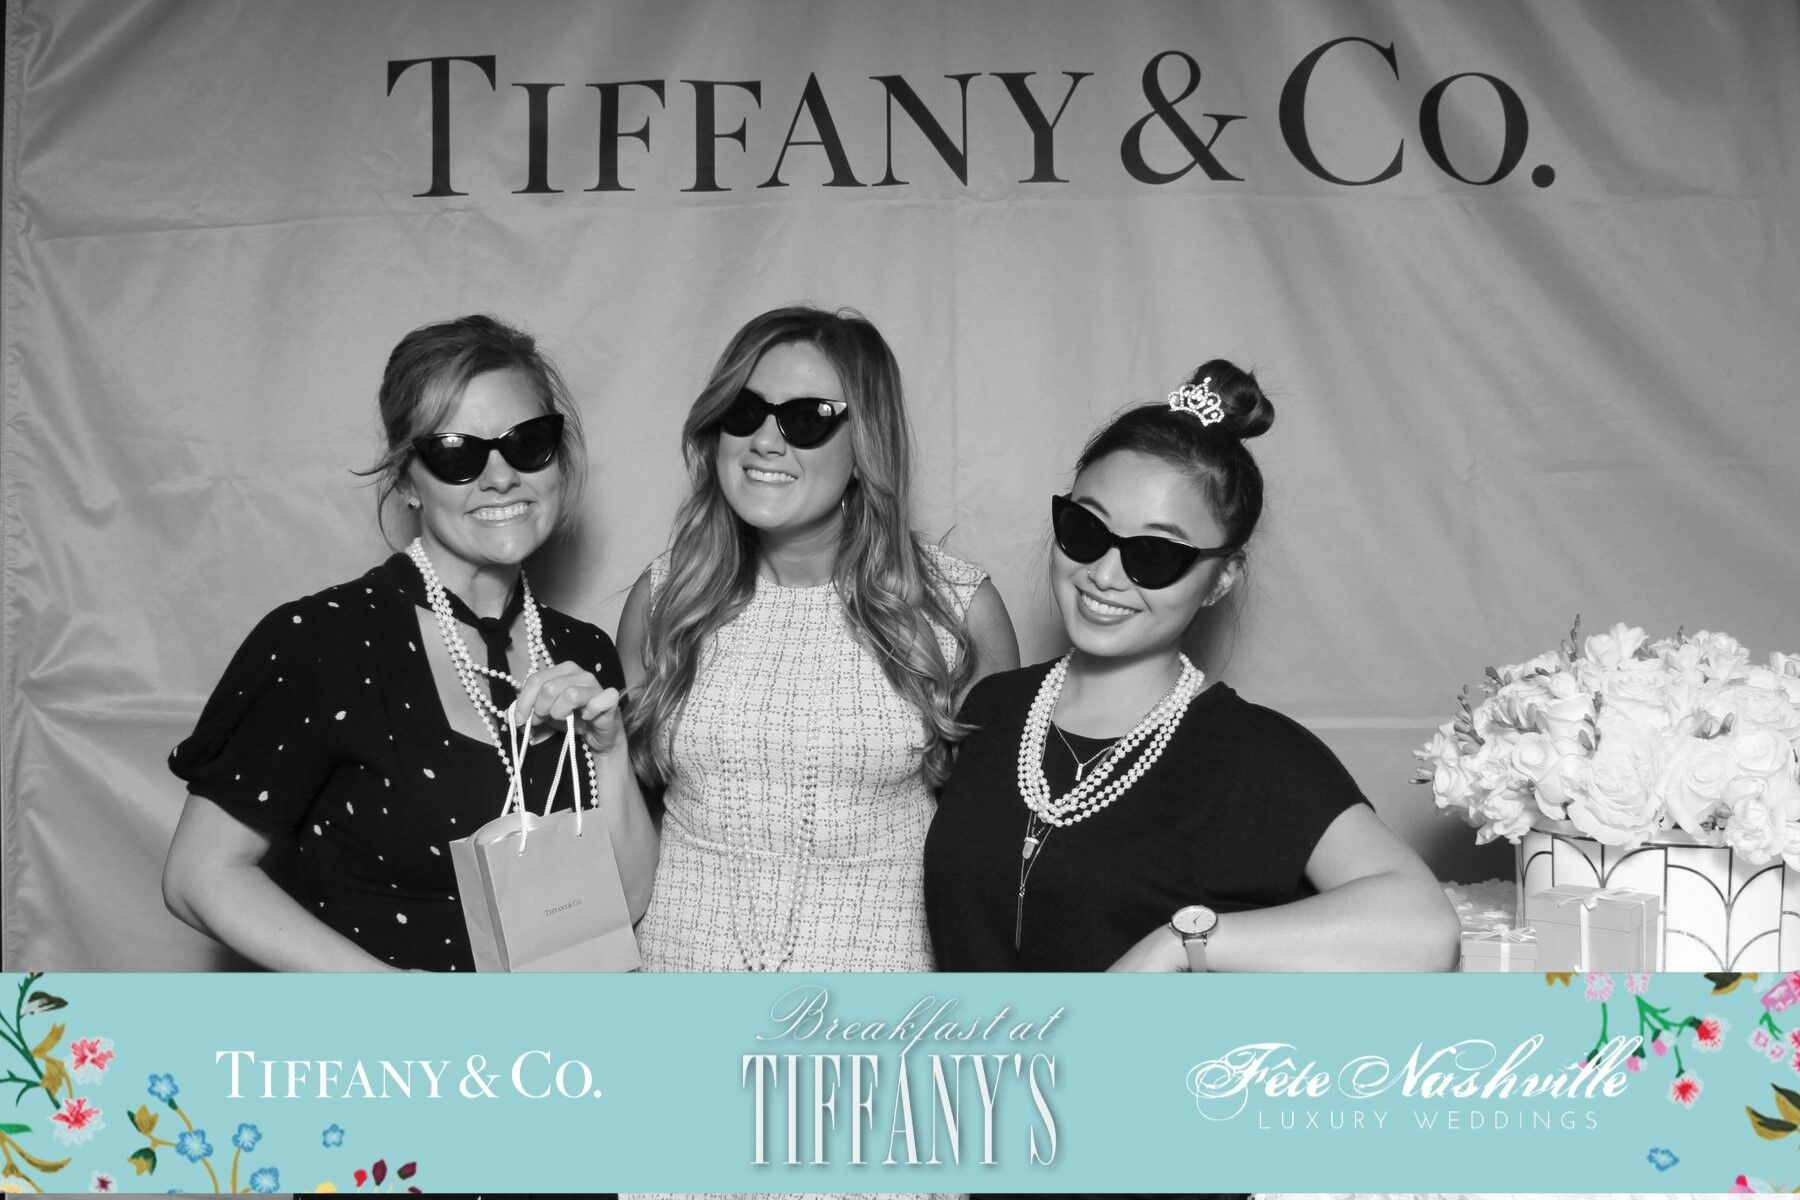 Tiffany & Co engagement ring fete nashville wedding4.jpeg